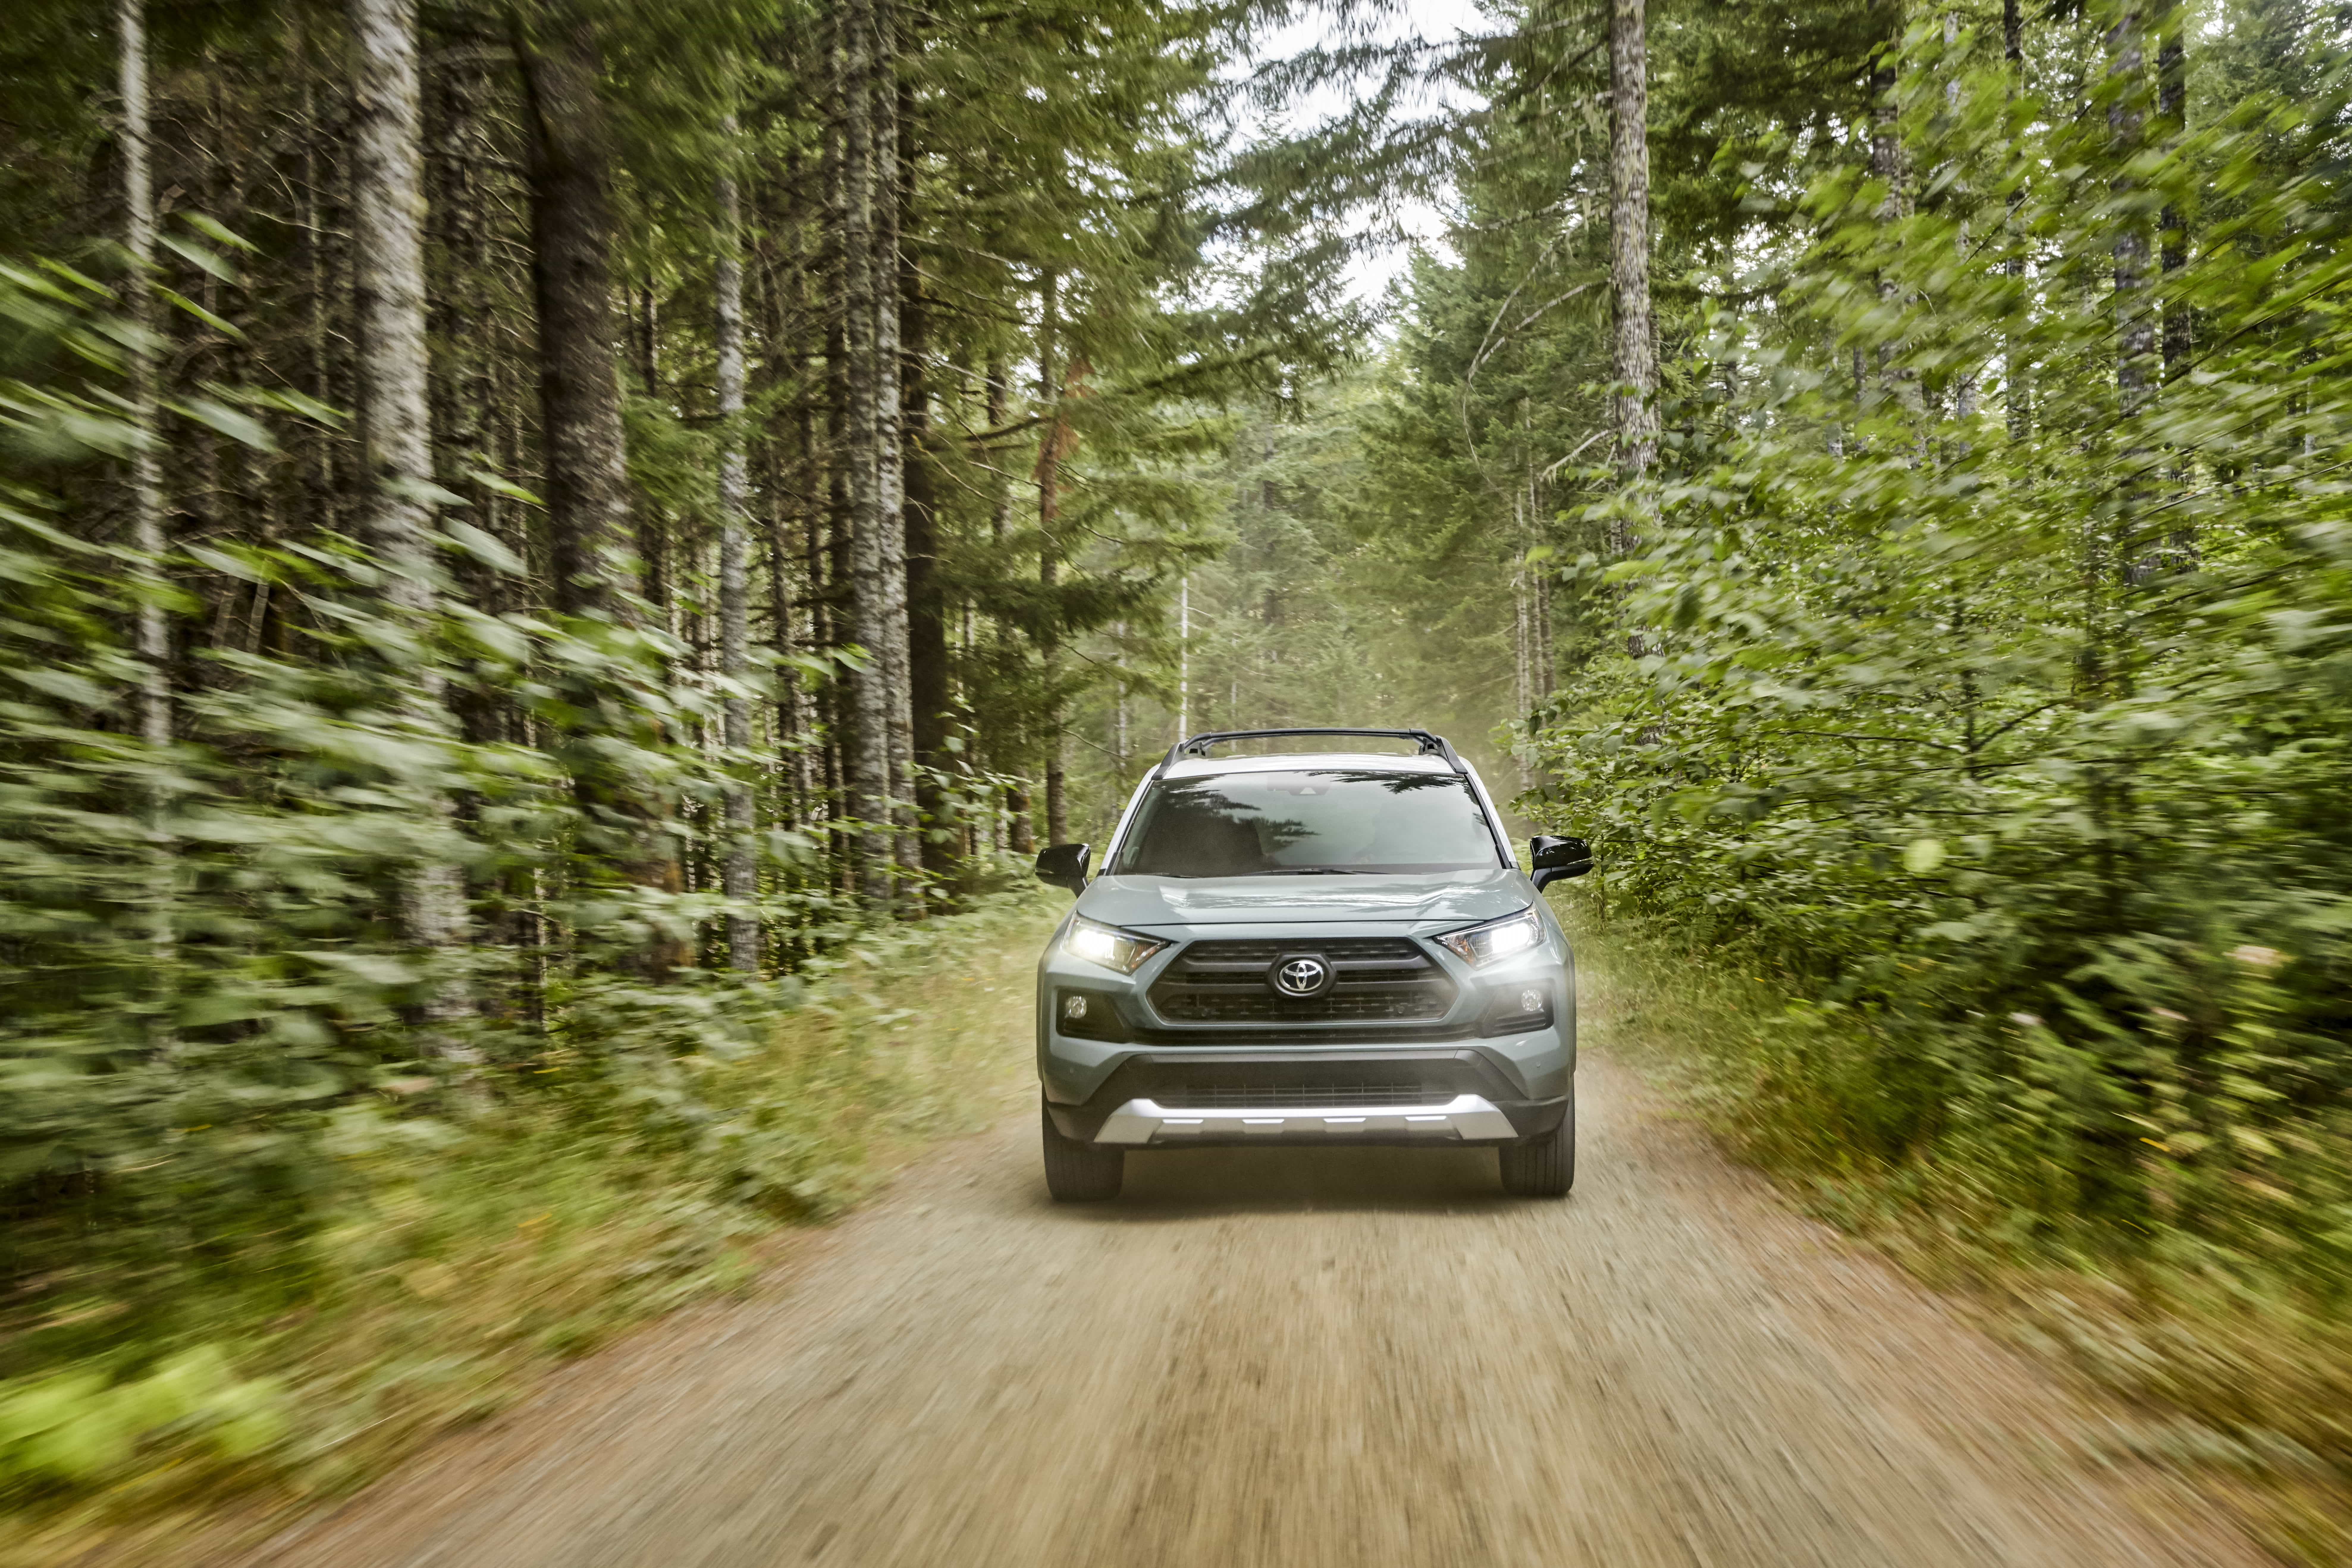 2021 Toyota RAV4 vs Honda CR-V: SUV Comparison